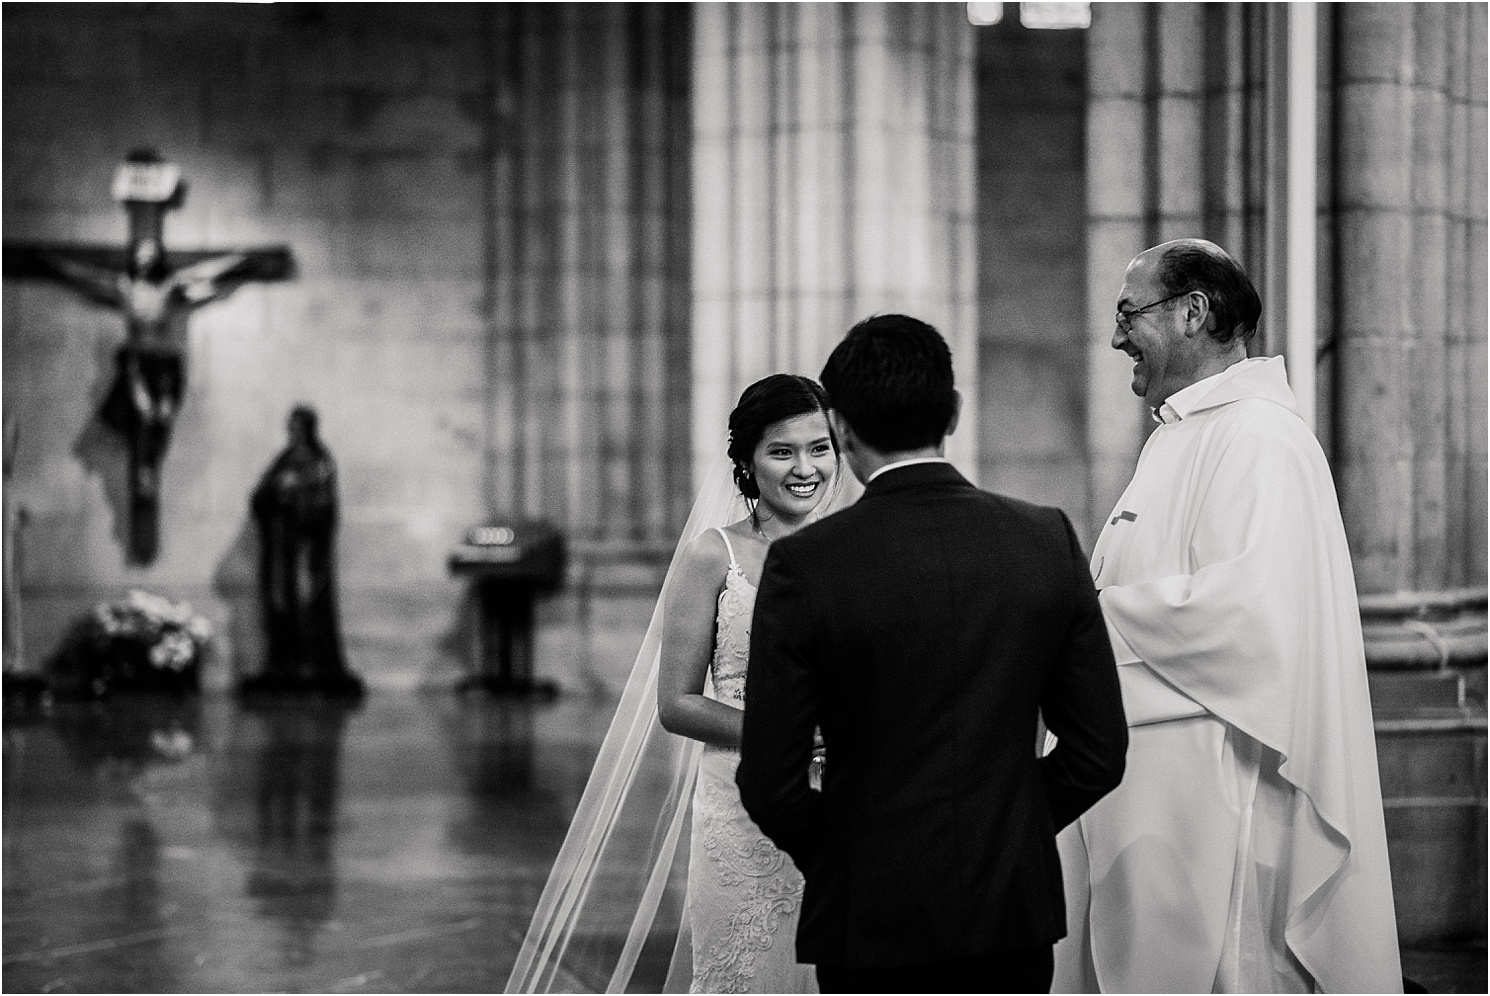 Destination wedding photographer San Sebastian - Destiantion wedding Donostia San Sebastián - Best photographer Basque country_-27